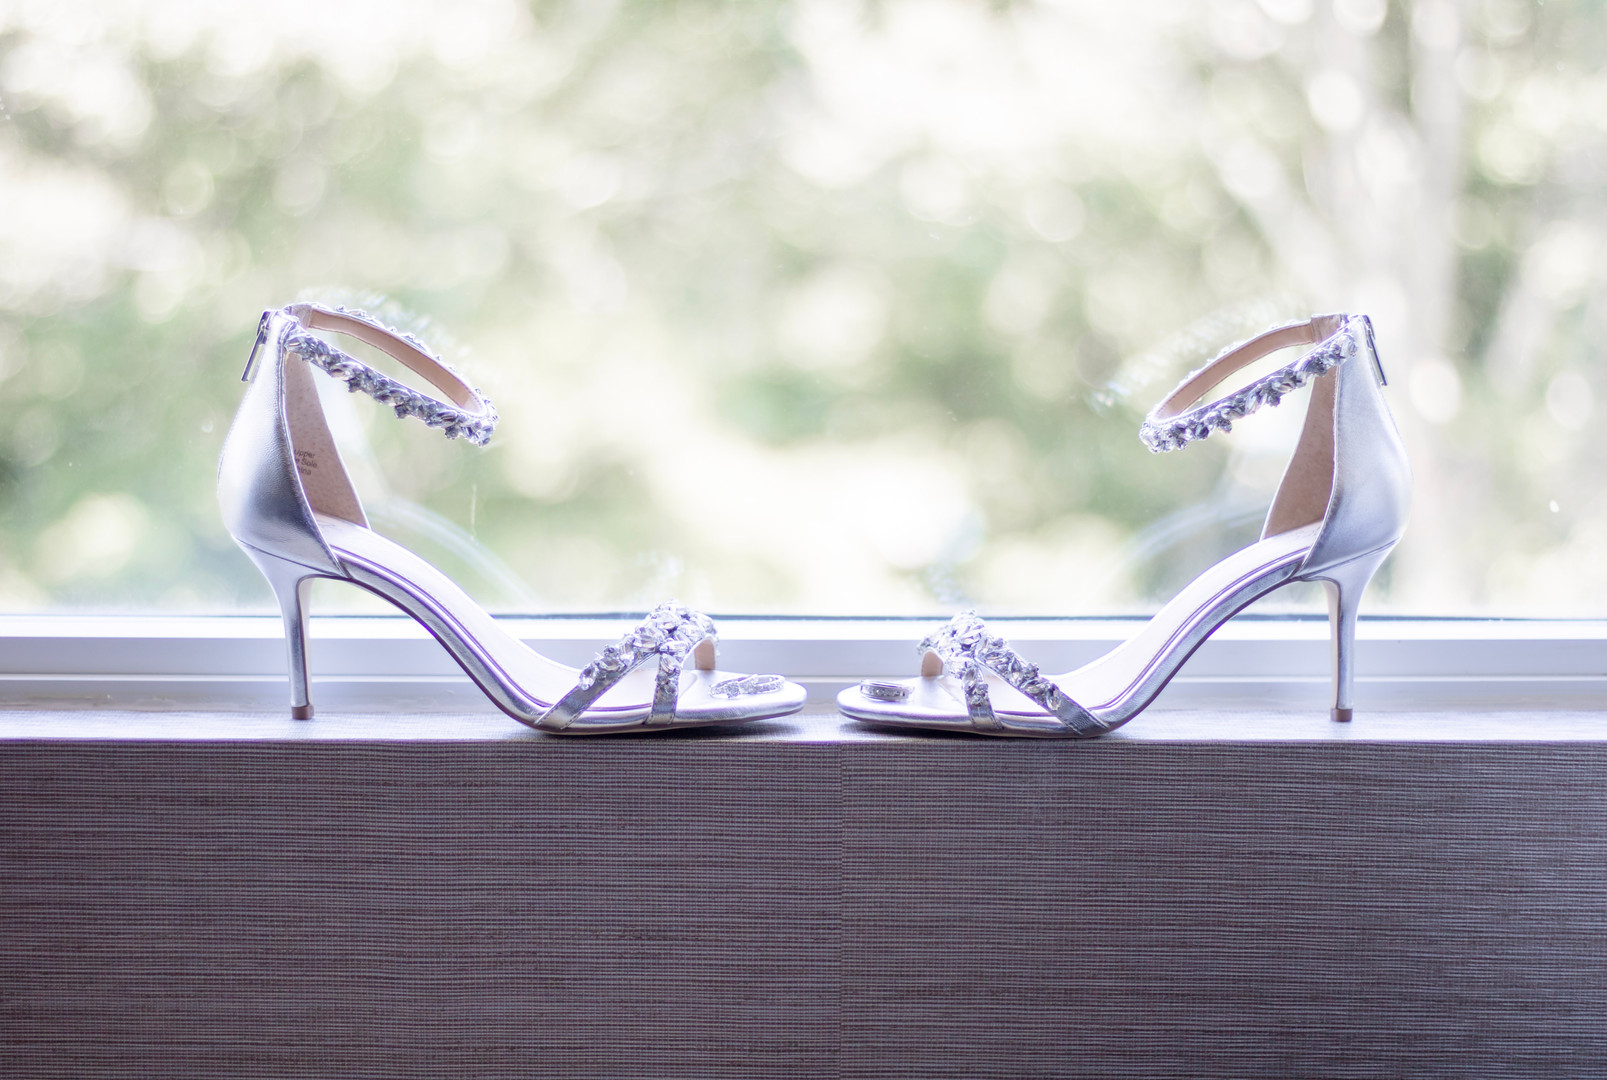 badgley-mischka-wedding-shoes-newport (2